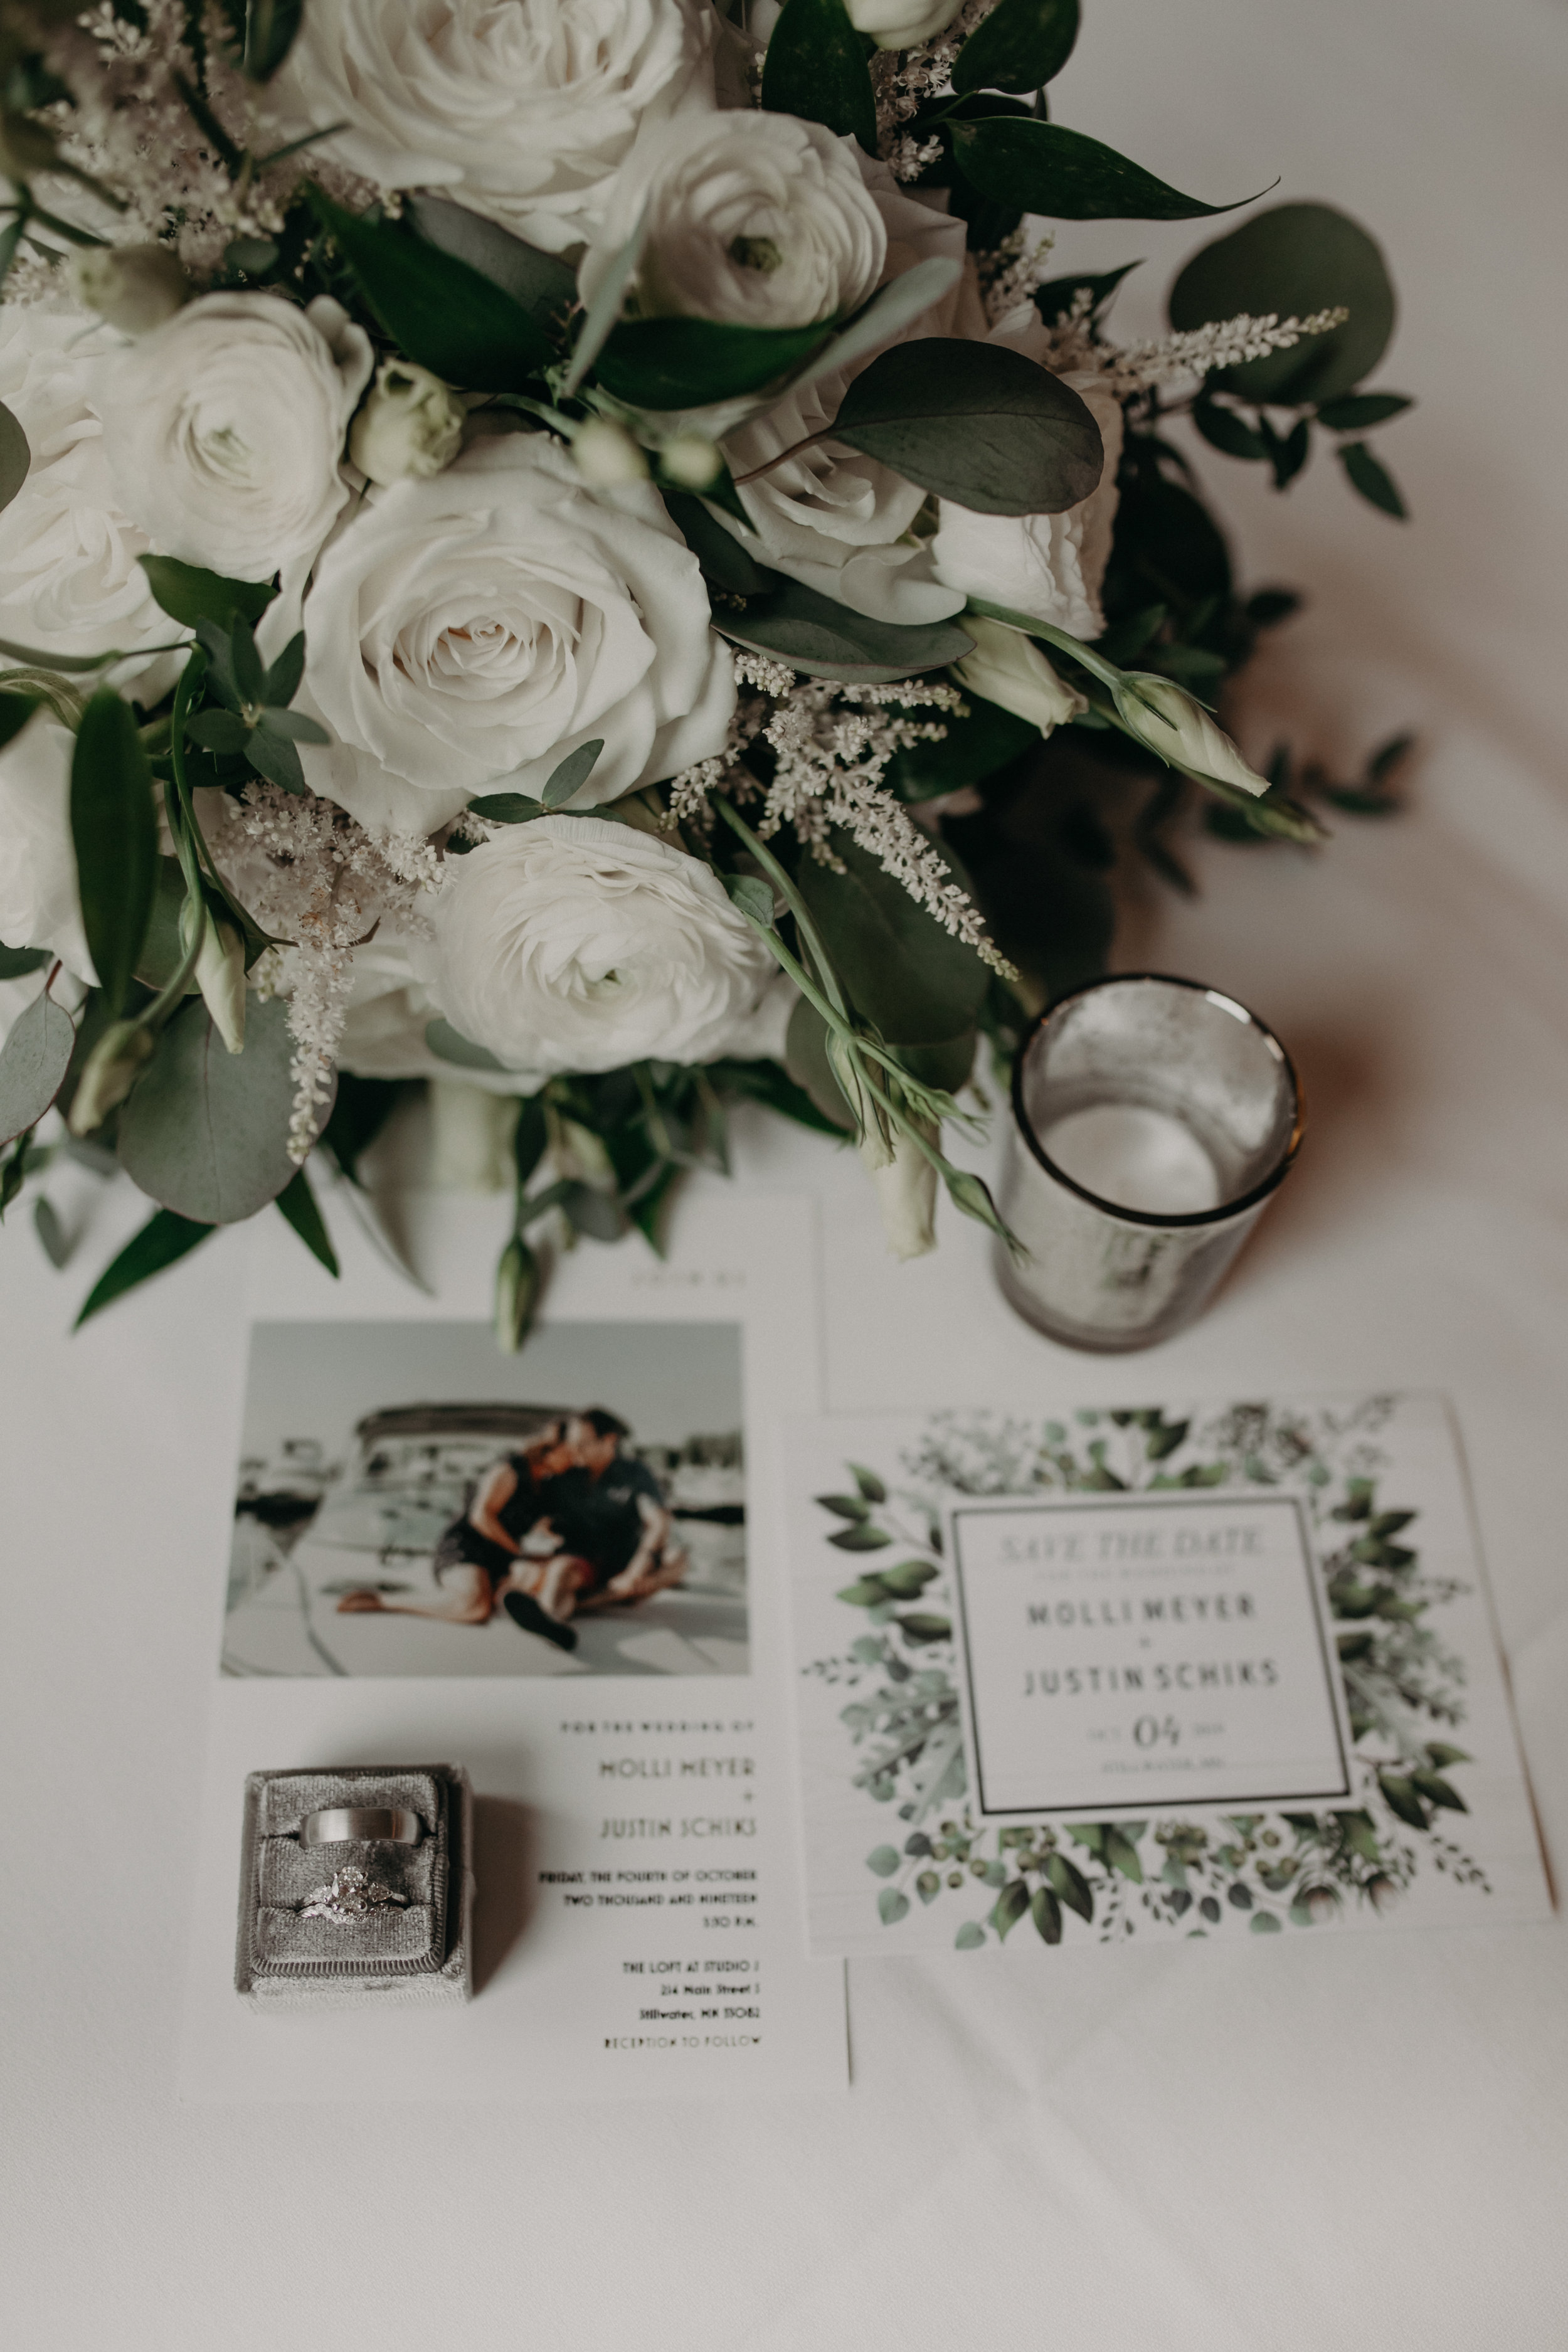 Lakeside Floral and Wedding Day Diamonds team up for Stillwater MN wedding details